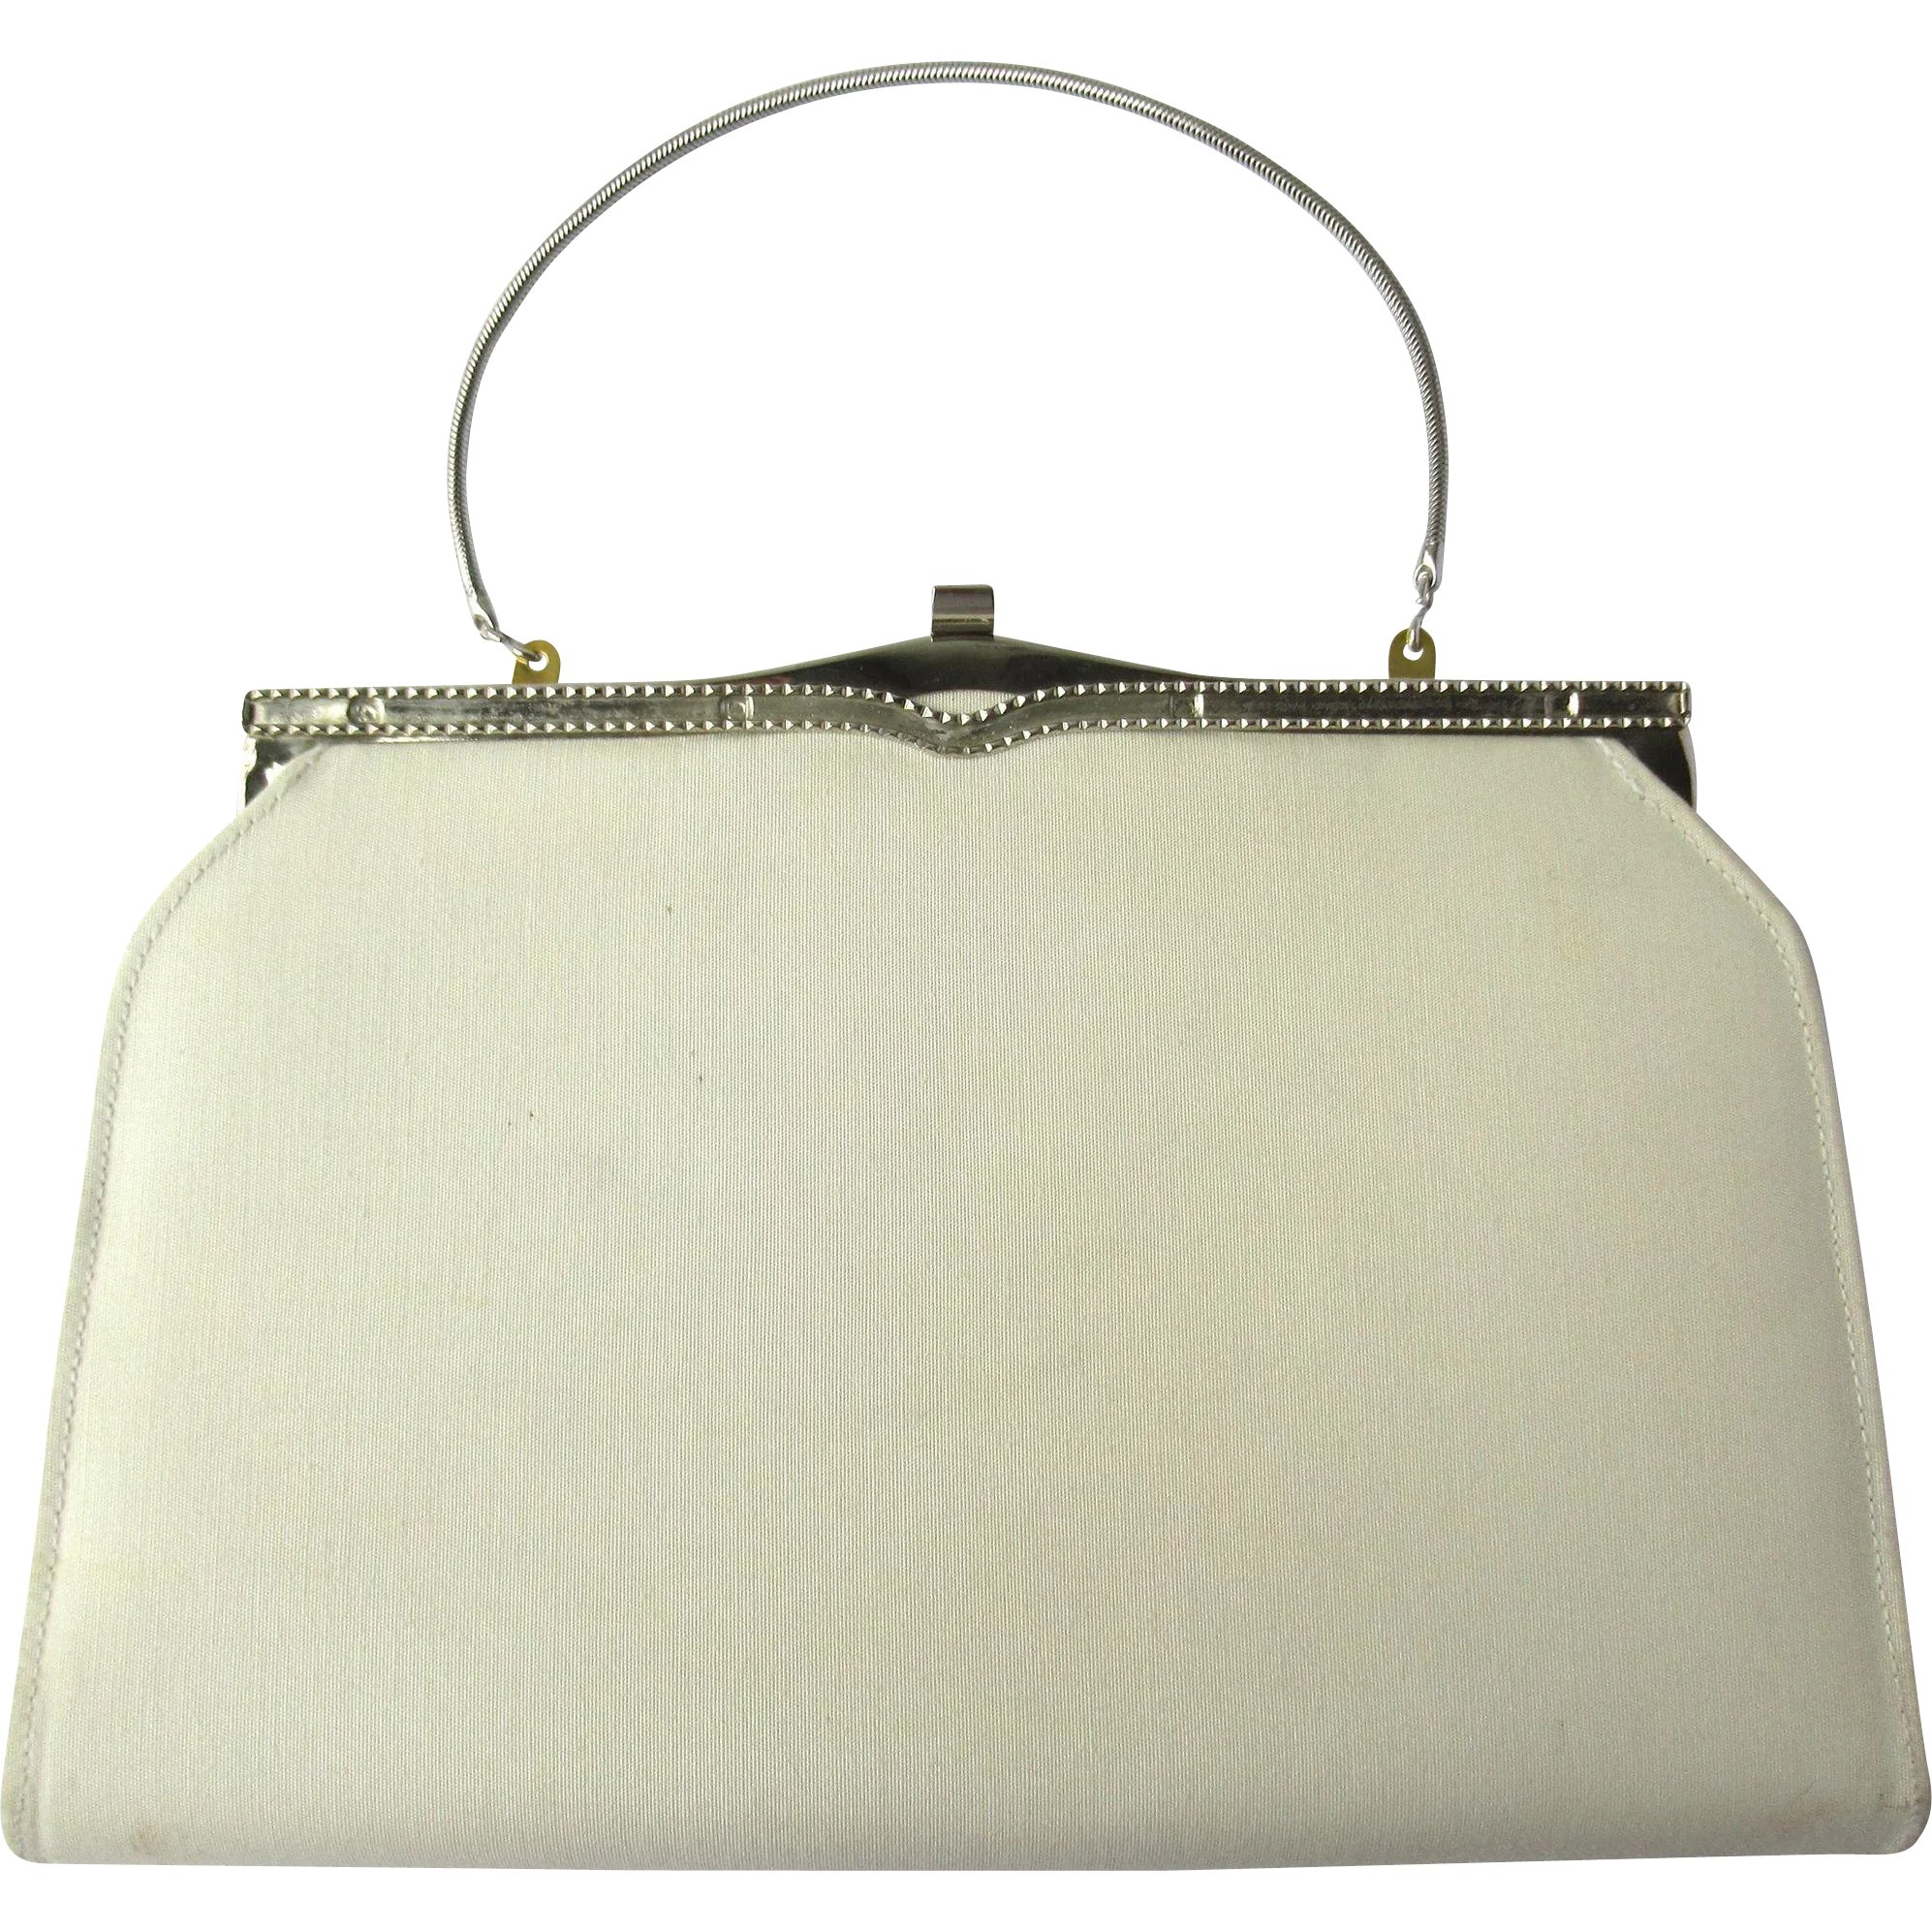 2a8494ae9005 Vintage 1950 s Convertible Clutch in Egg Shell Color – an Ambassador    Whimsy